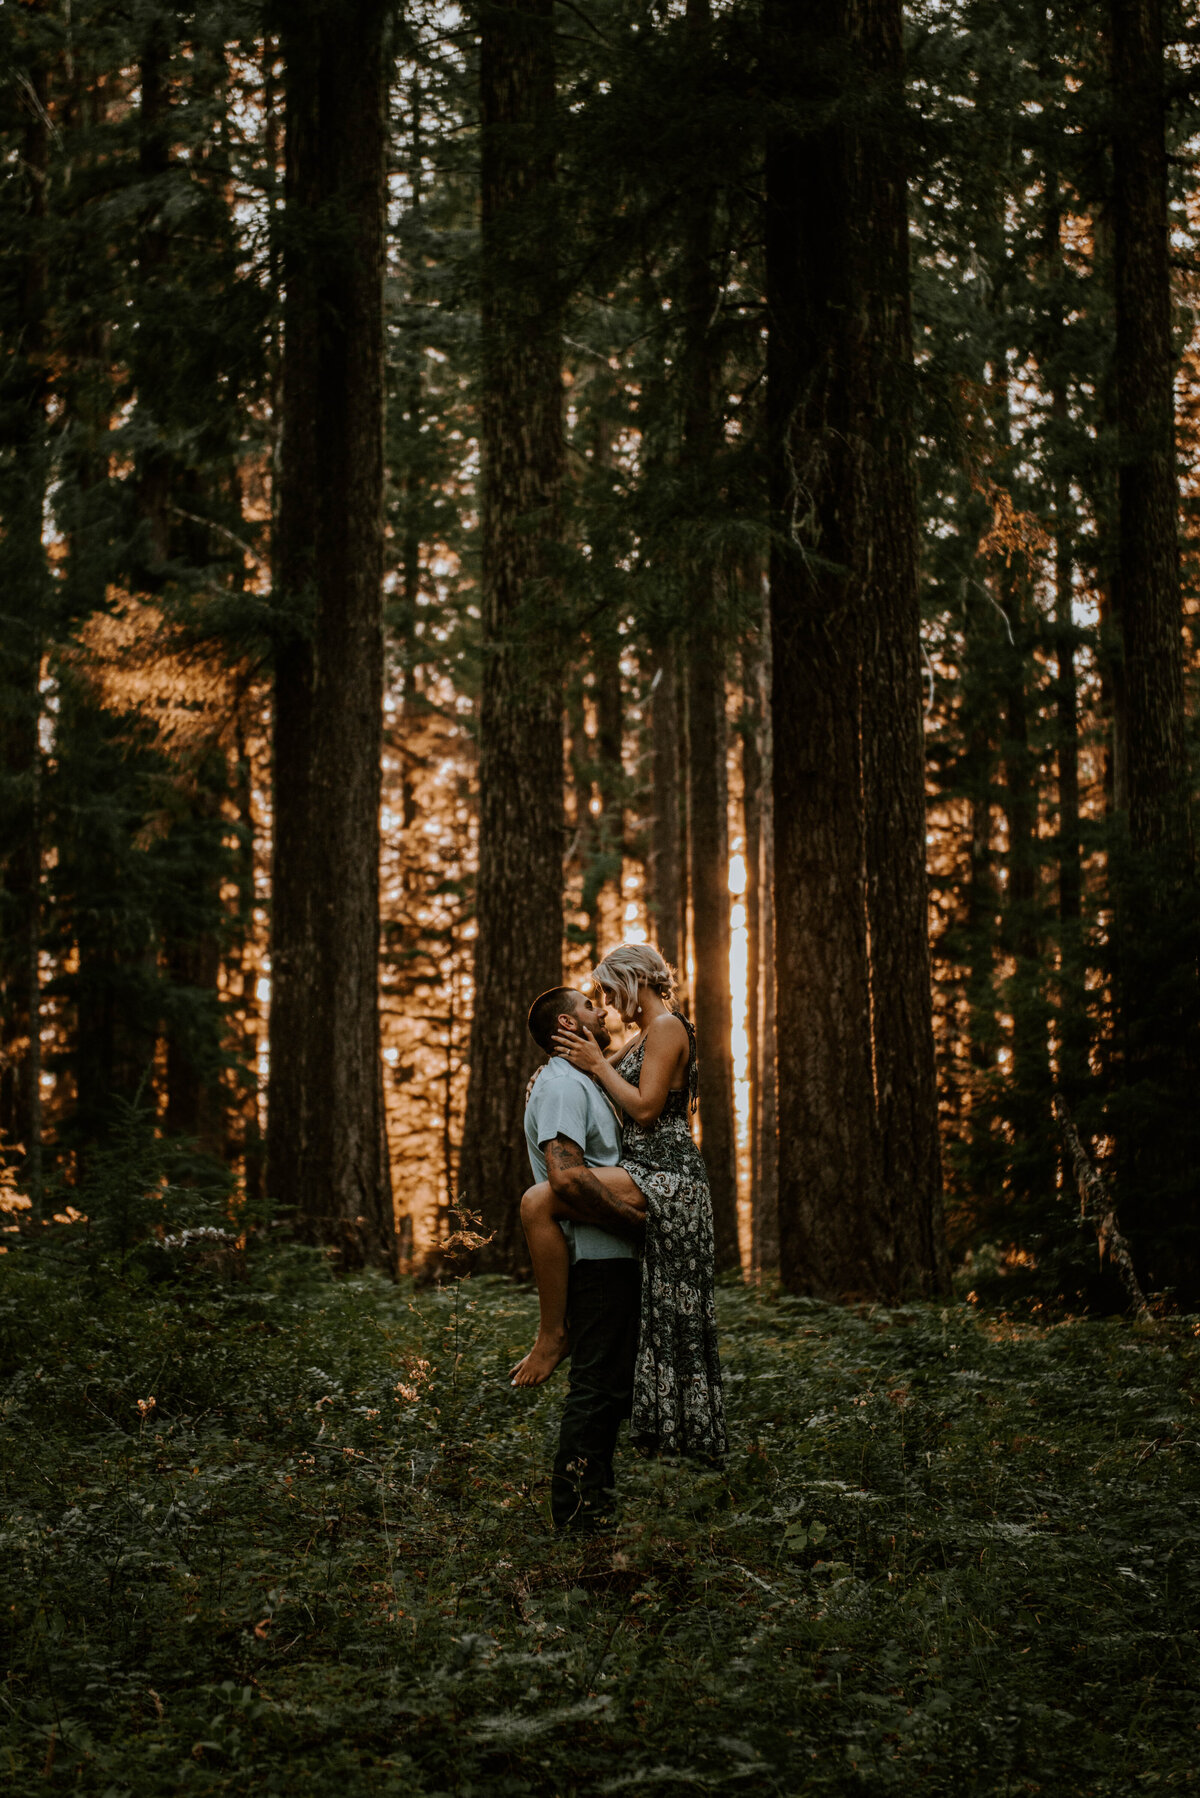 sahalie-falls-oregon-engagement-elopement-photographer-central-waterfall-bend-forest-old-growth-6839